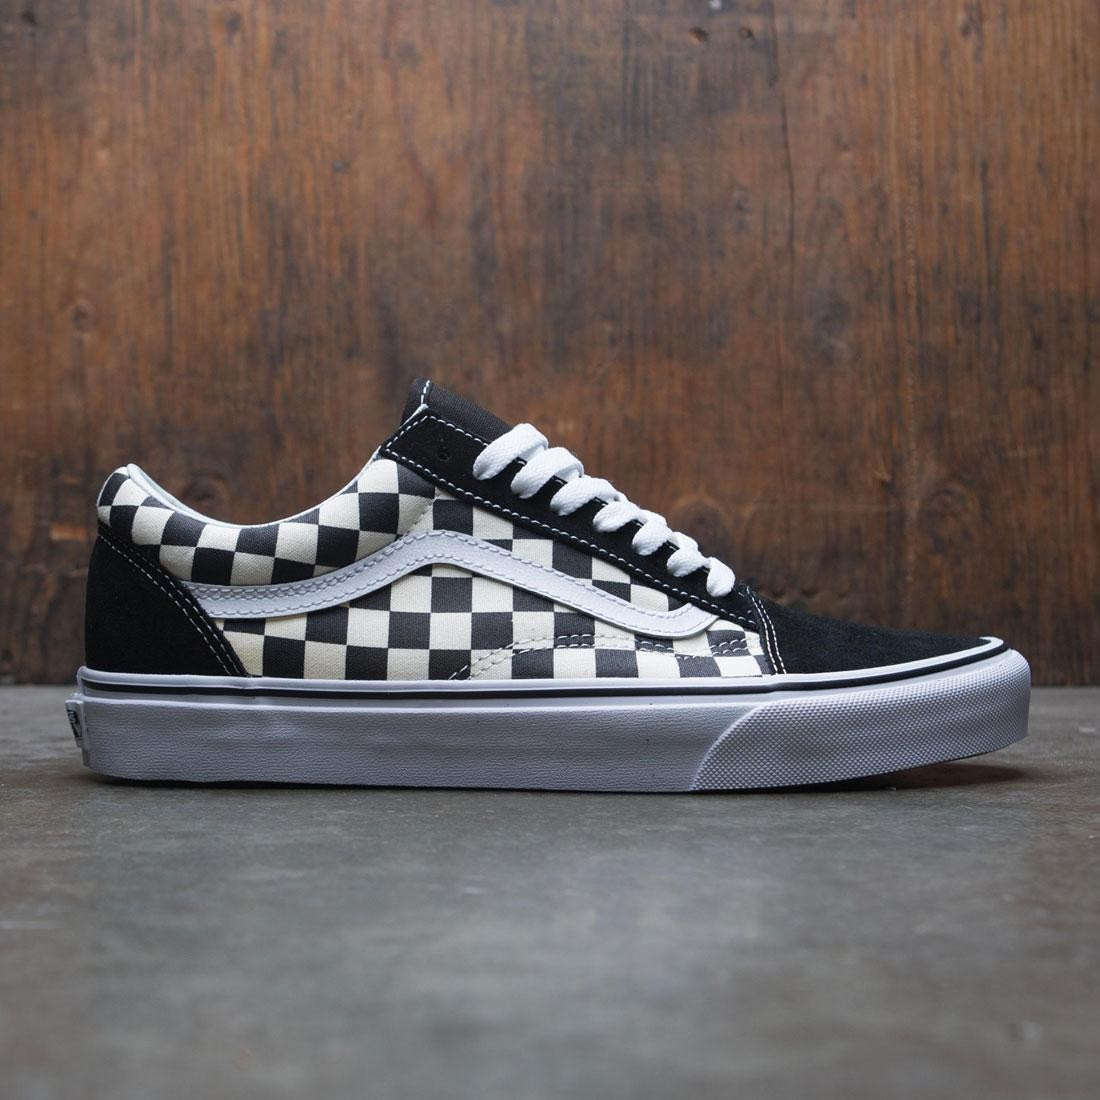 87e22e33eee8 Vans Men Old Skool - Primary Checkerboard black white